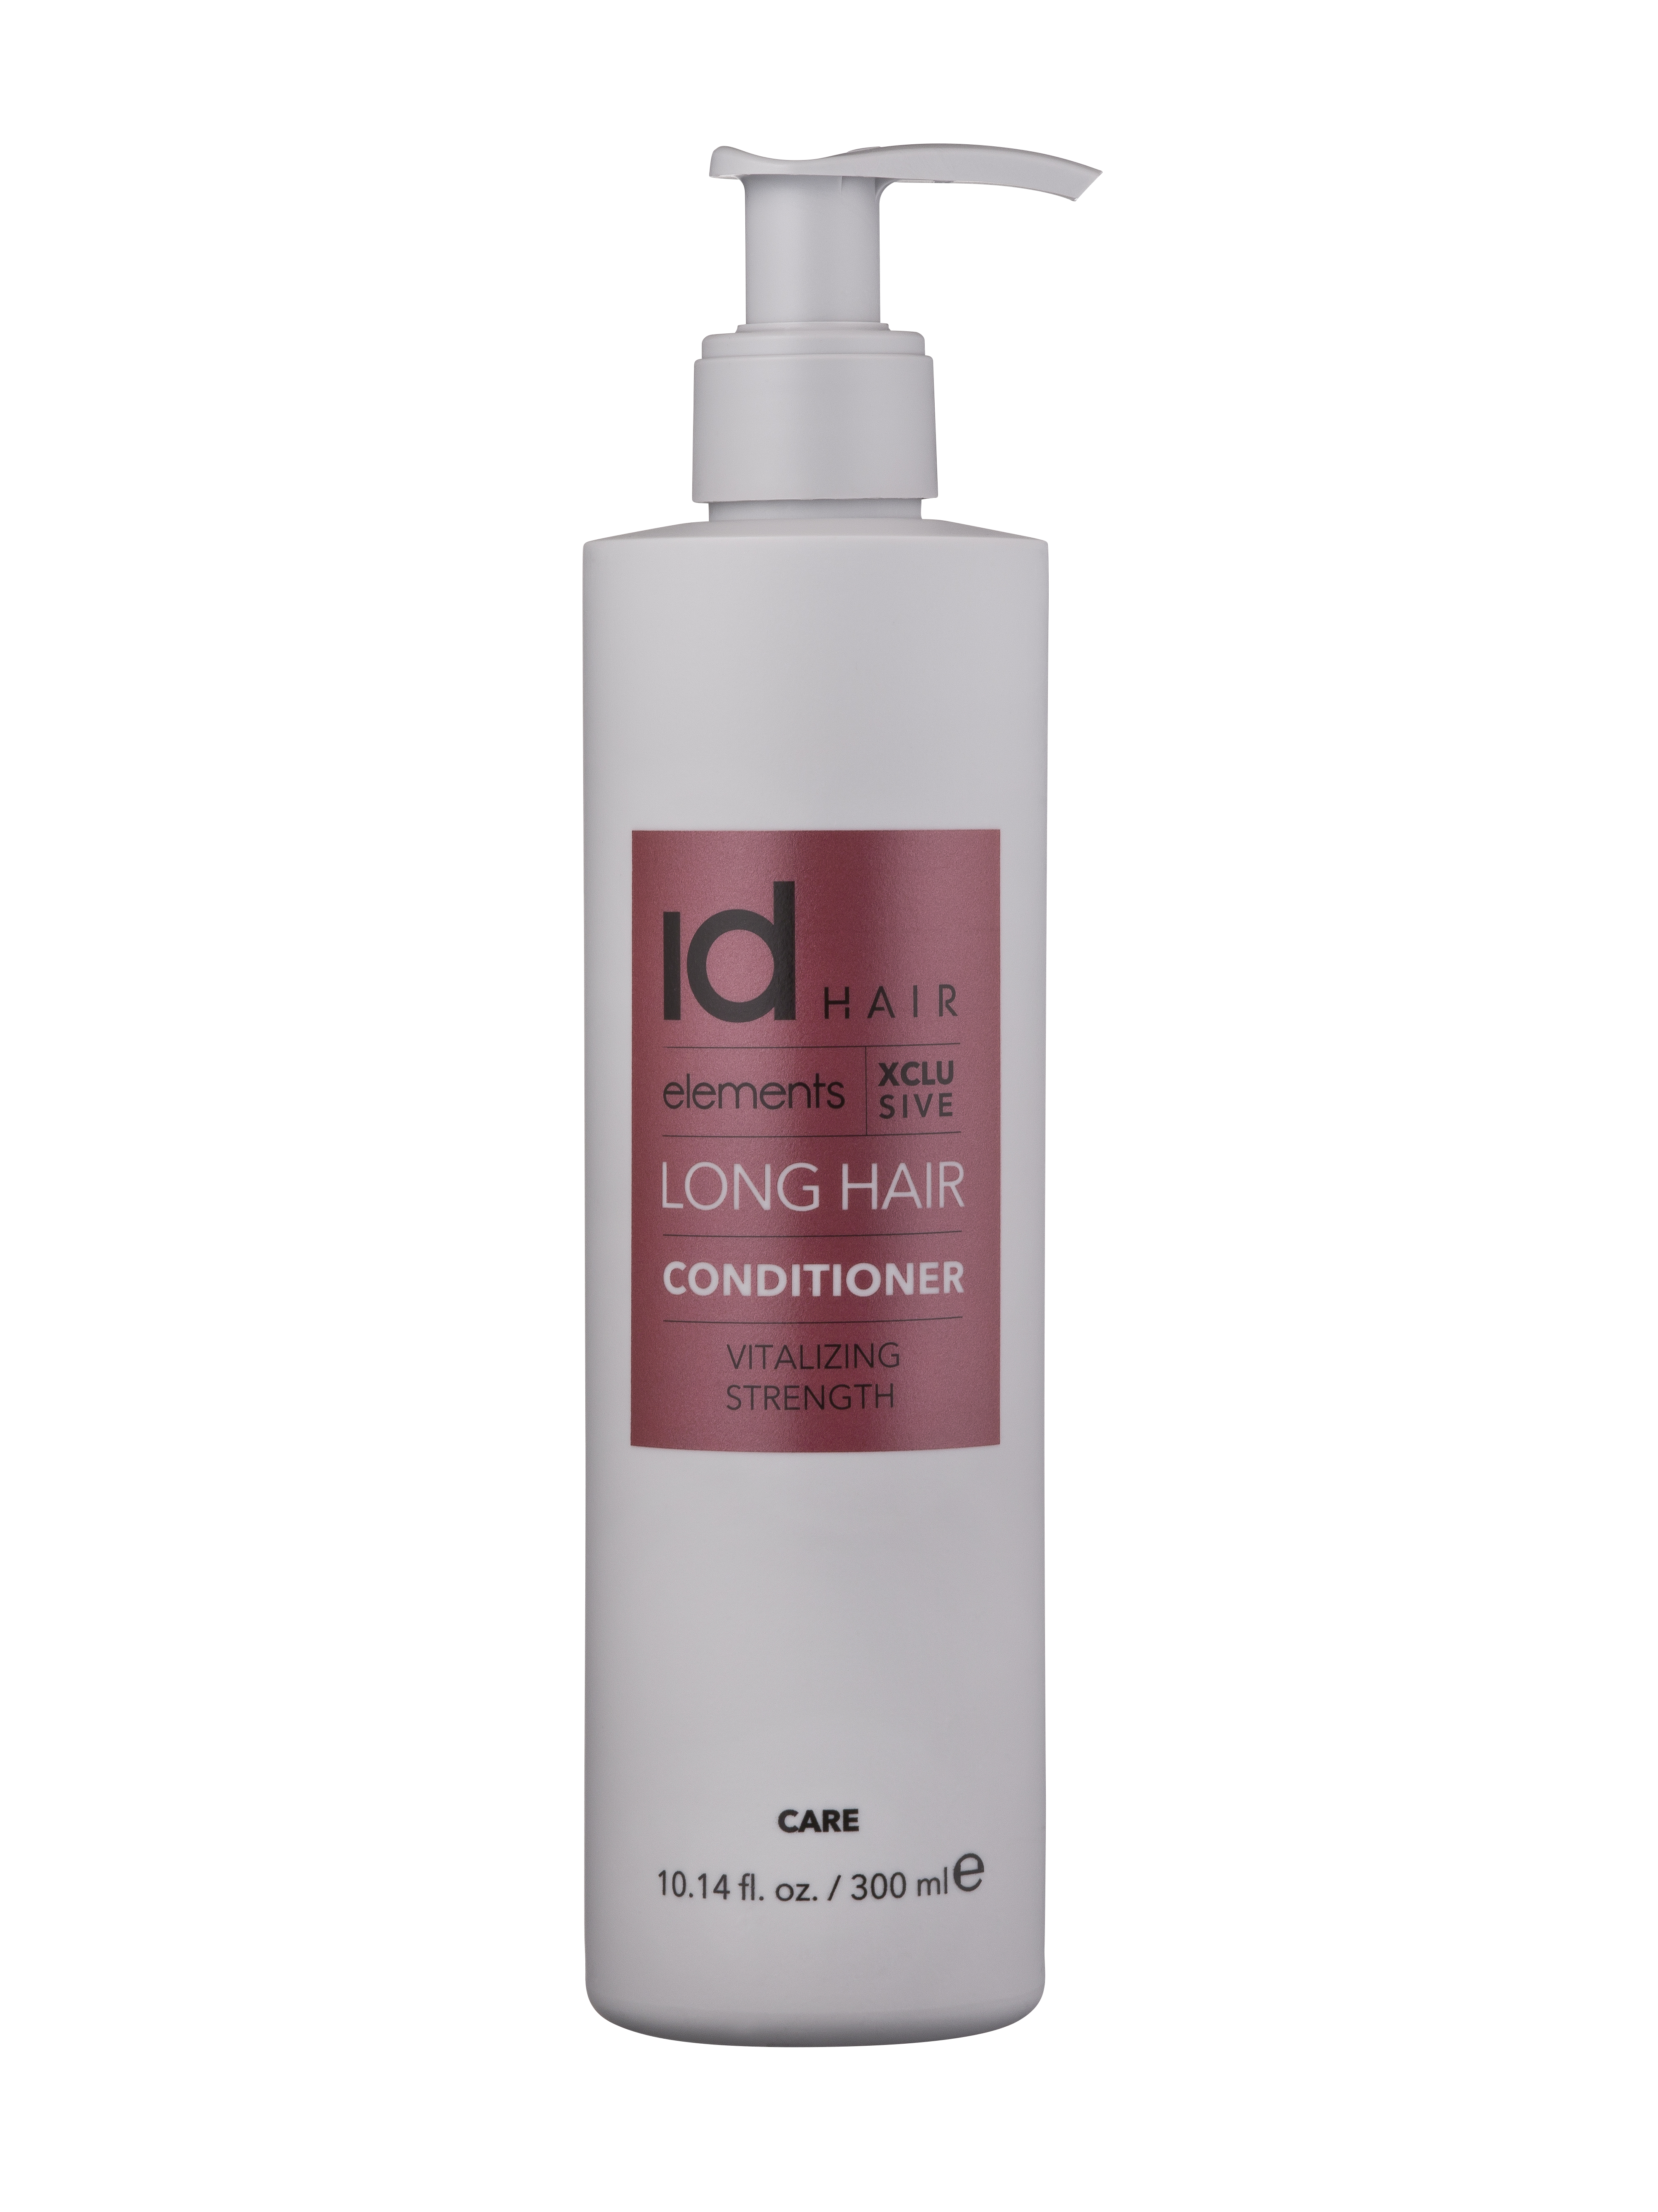 IdHAIR - Elements Xclusive Long Hair Conditioner 300 ml